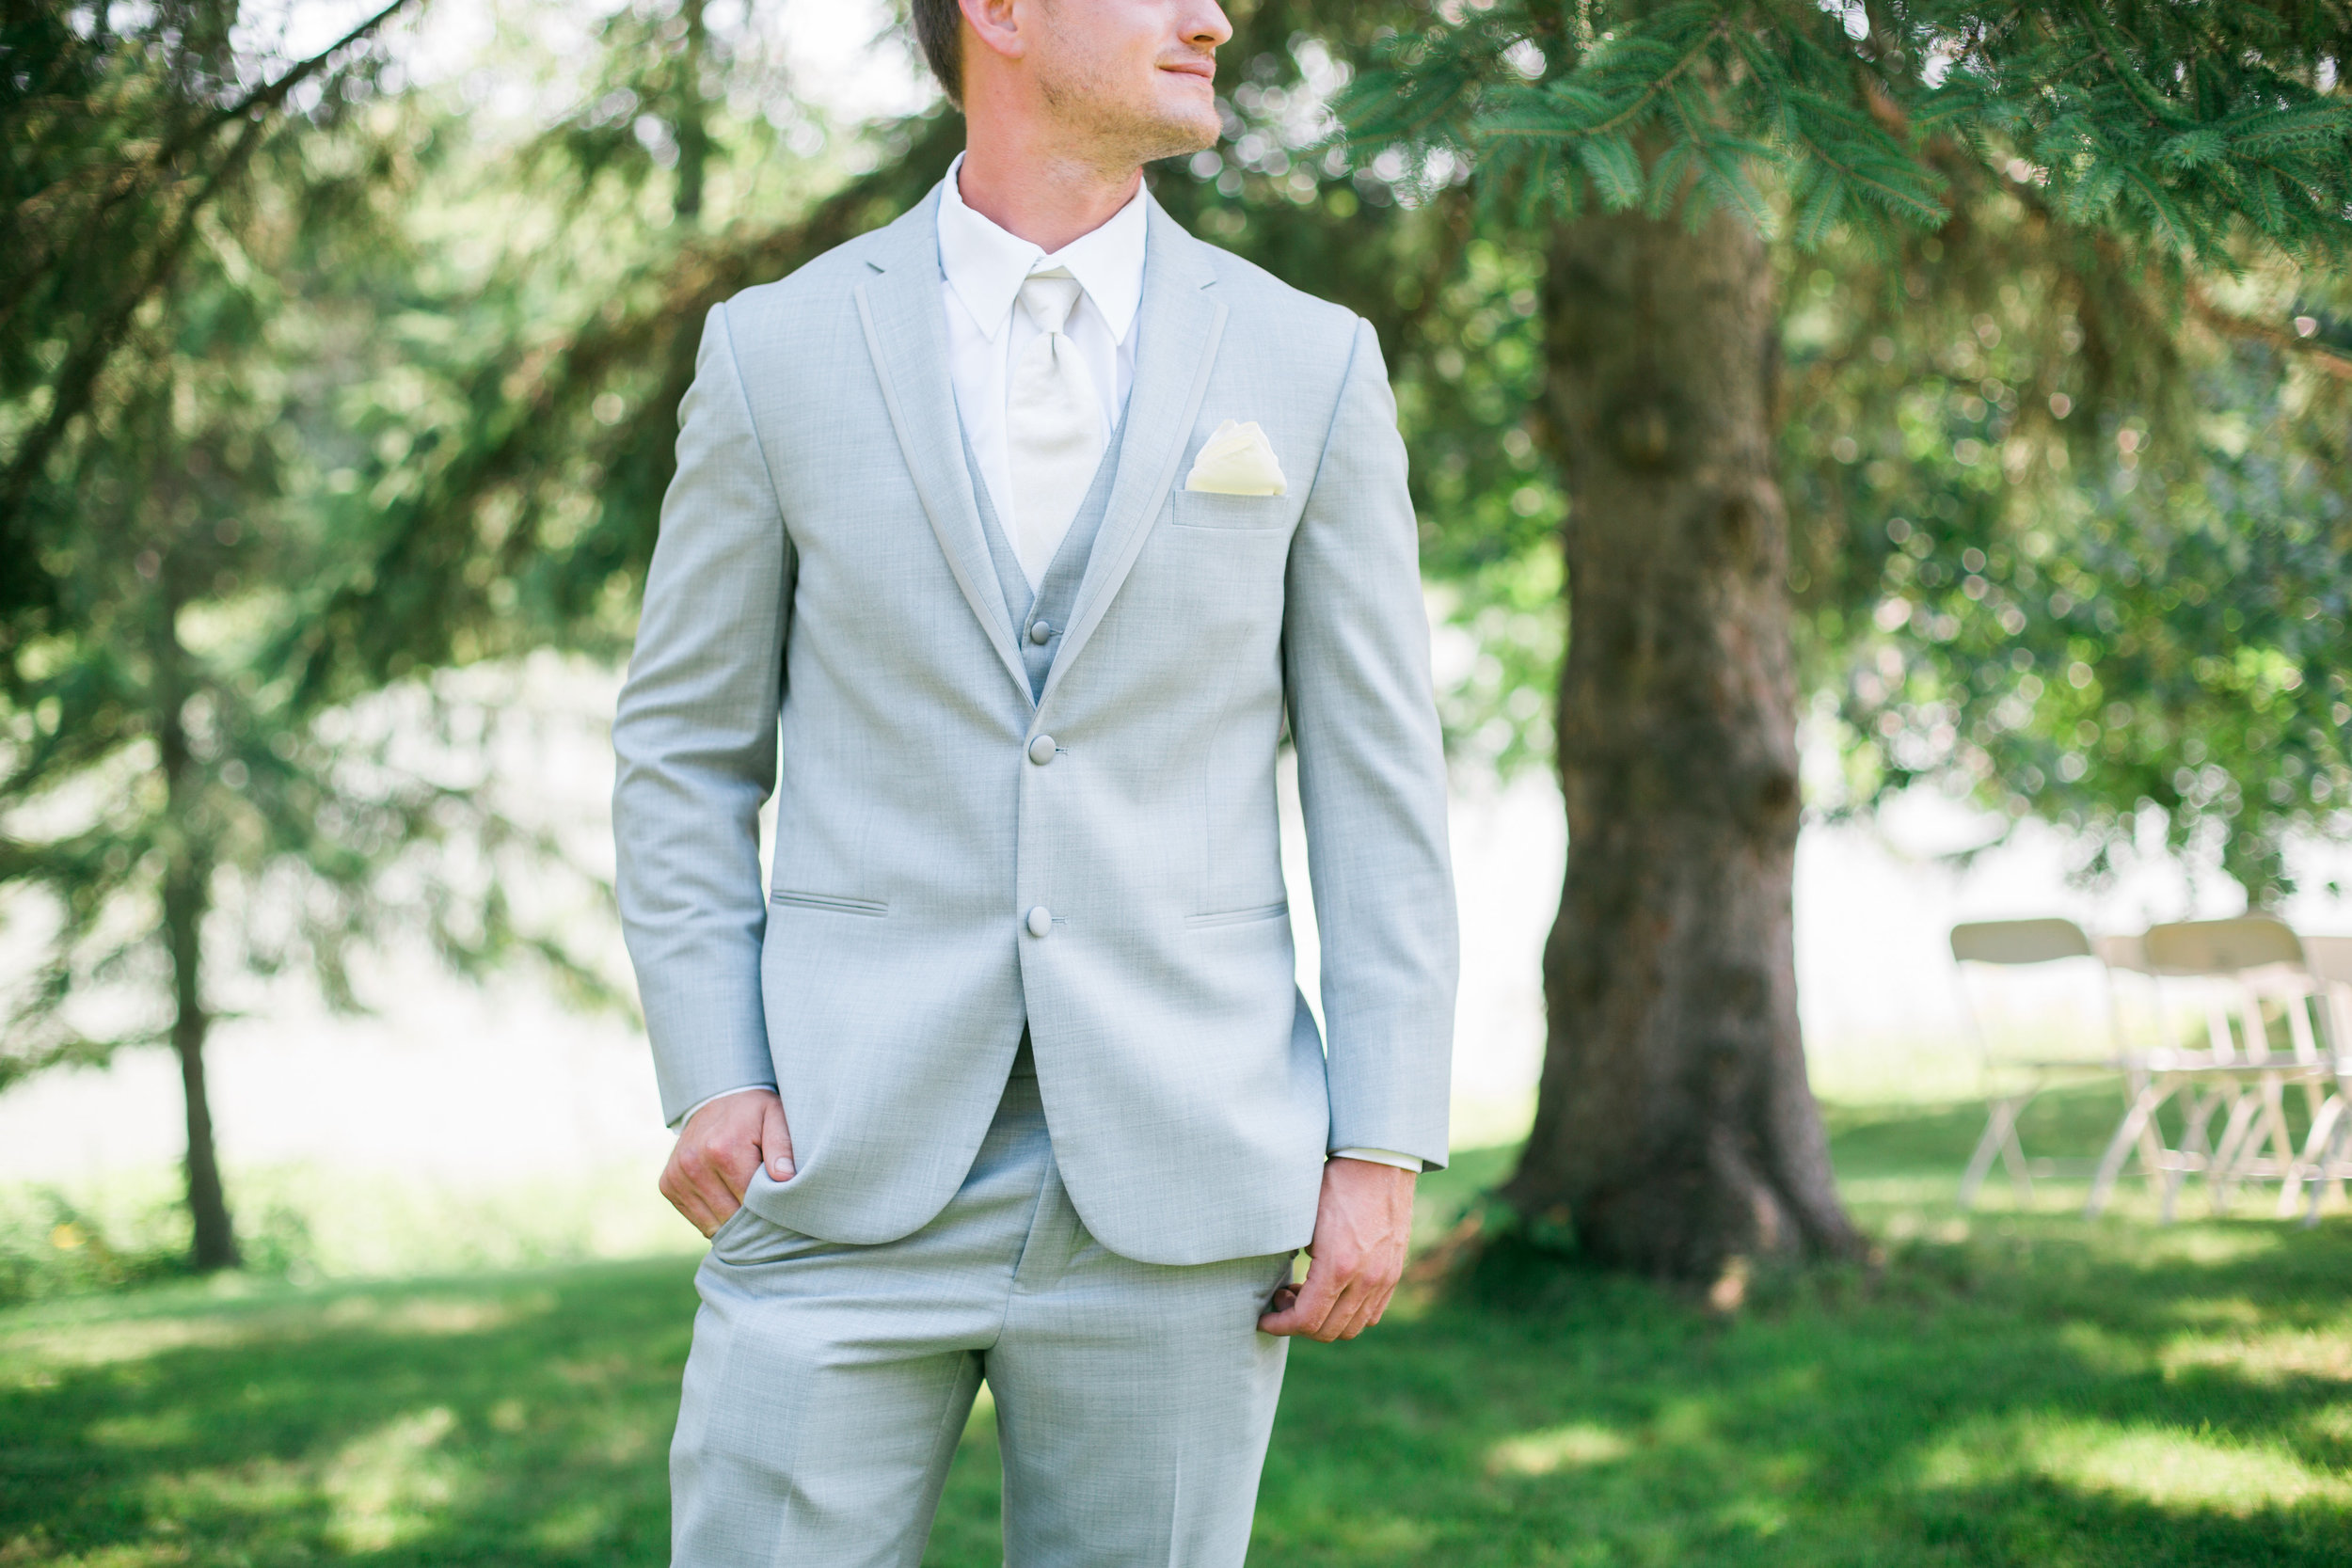 Groom attire of grey suit at rural Minnesota wedding Minnesota wedding photography Mallory Kiesow Photography